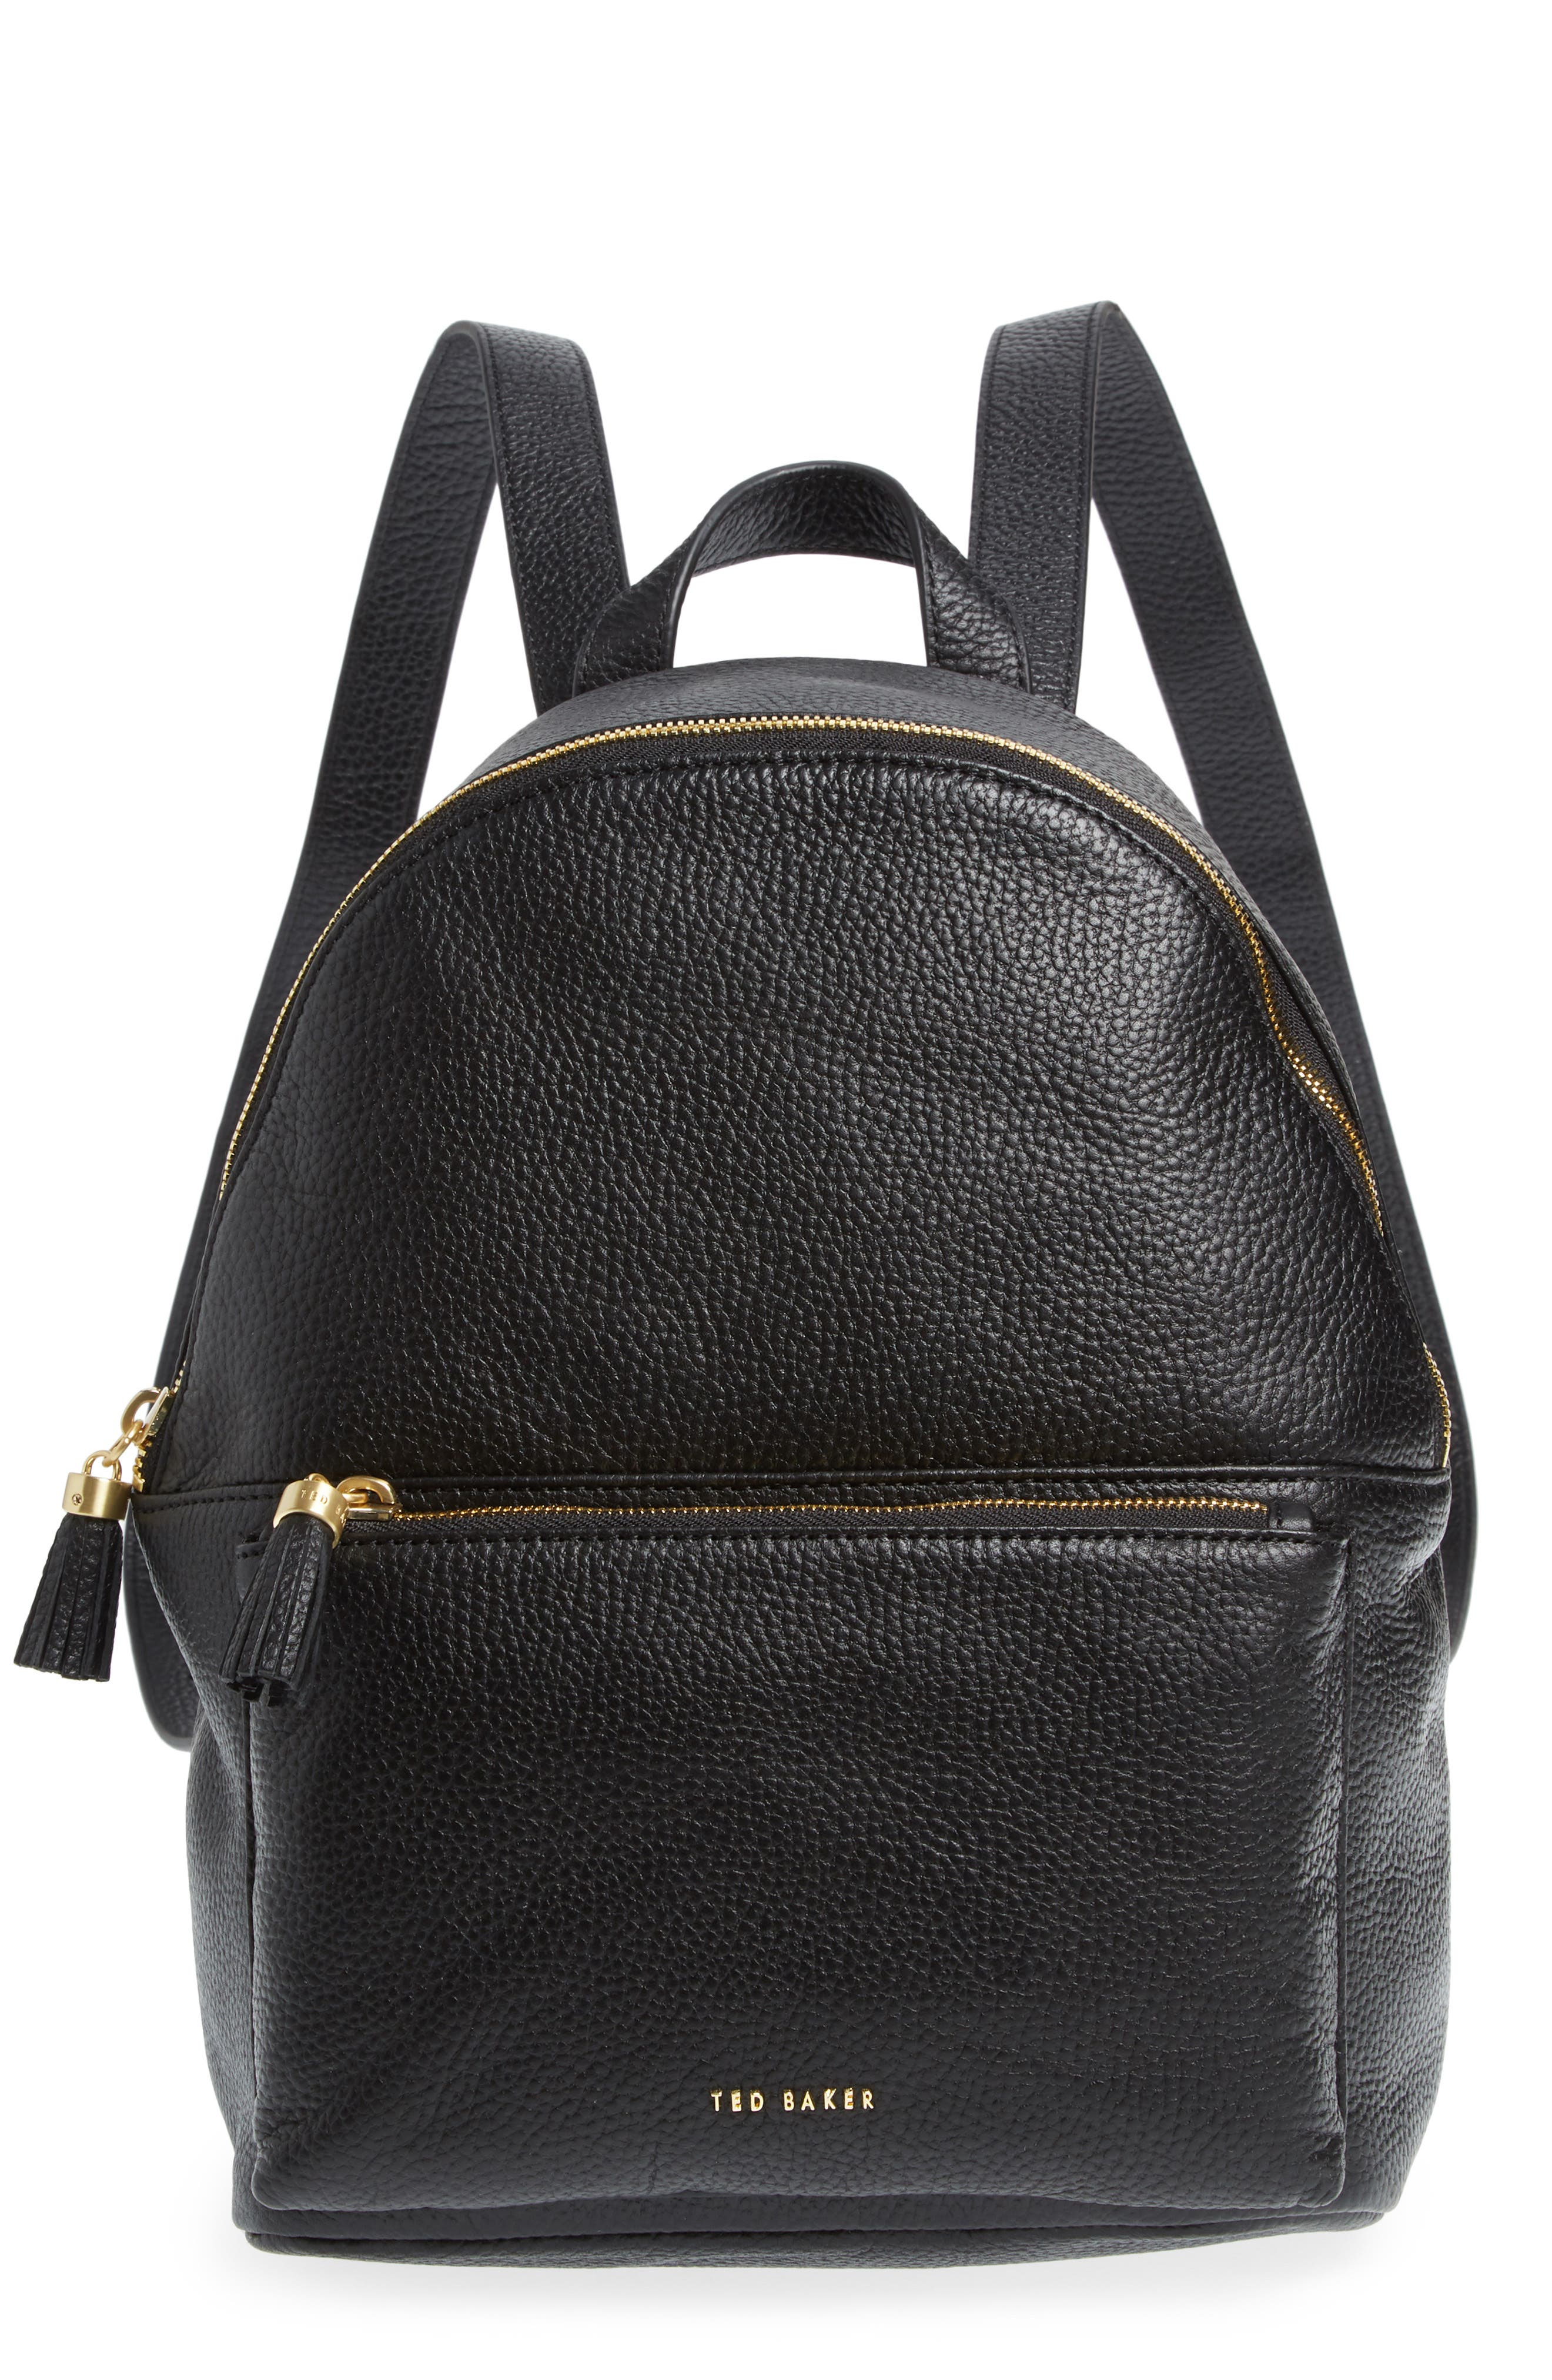 TED BAKER LONDON Leather Backpack, Main, color, 001